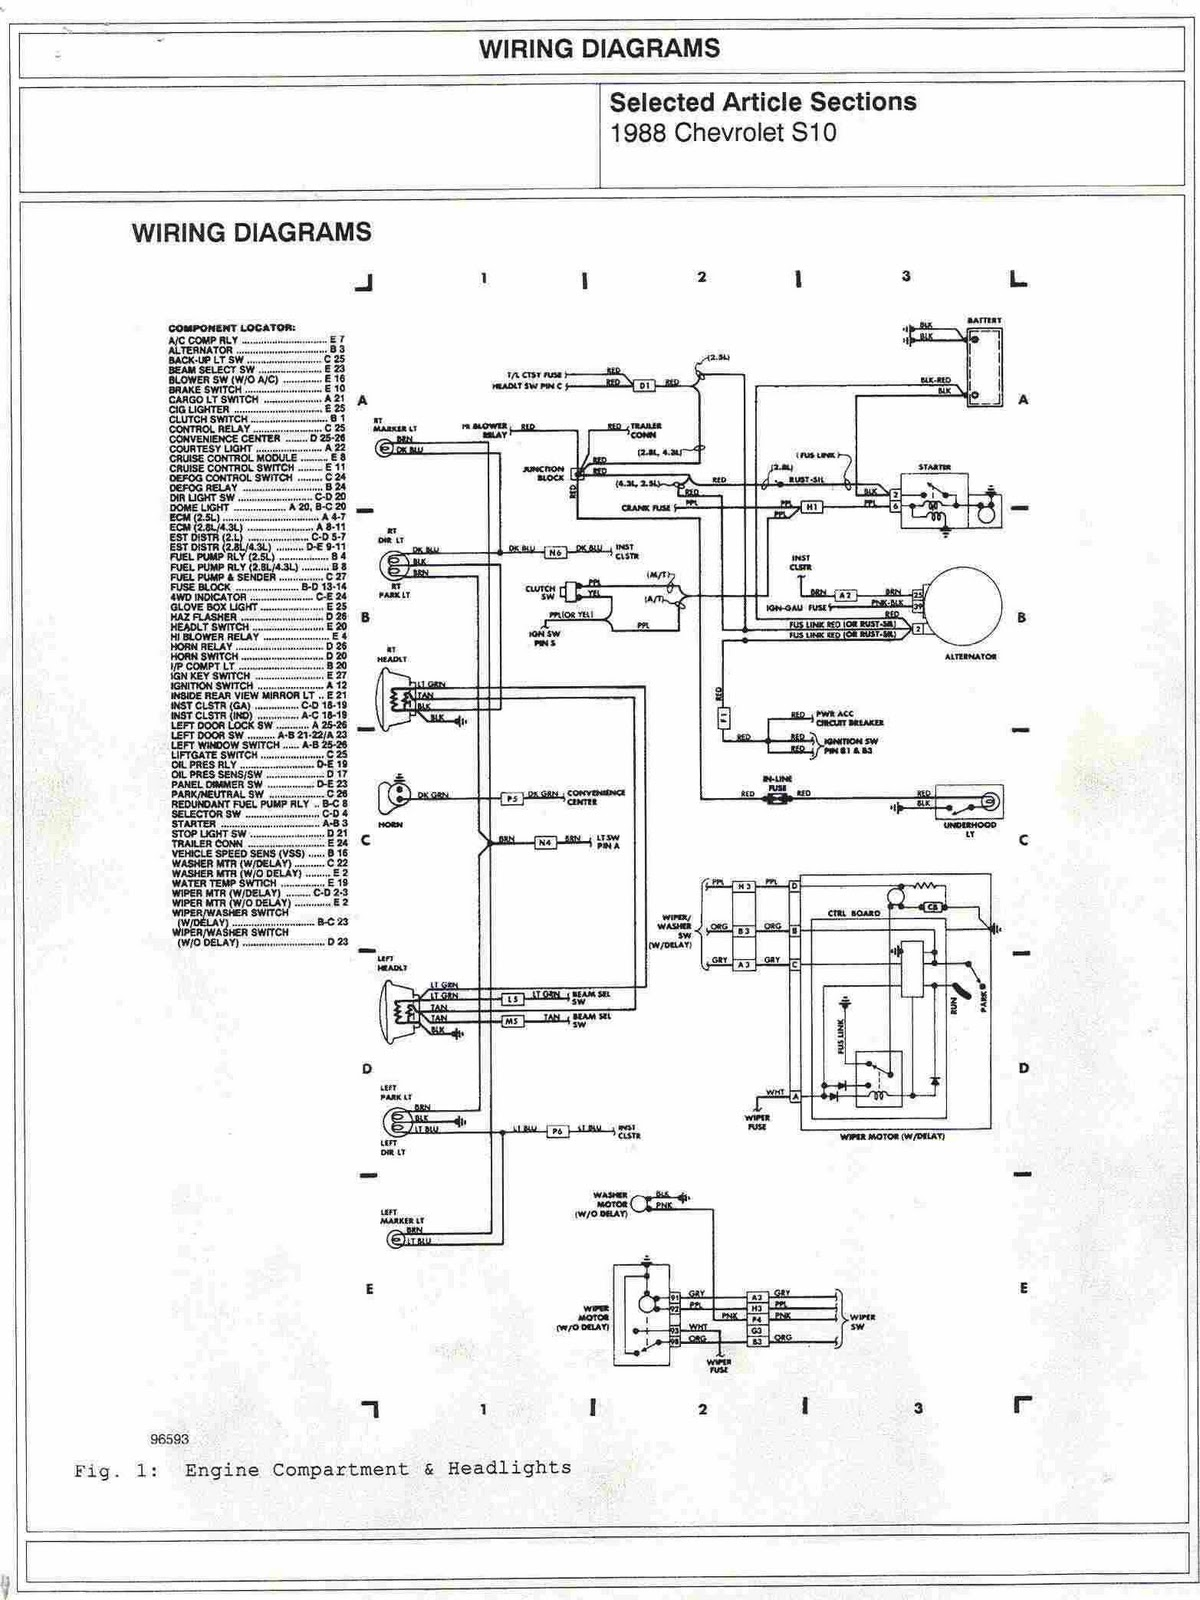 1988+Chevrolet+S10+Engine+Compartment+and+Headlights+Wiring+Diagrams 95 s10 wiring diagram 95 tahoe wiring diagram \u2022 wiring diagrams 1990 Chevy S10 4.3 Wiring-Diagram at readyjetset.co